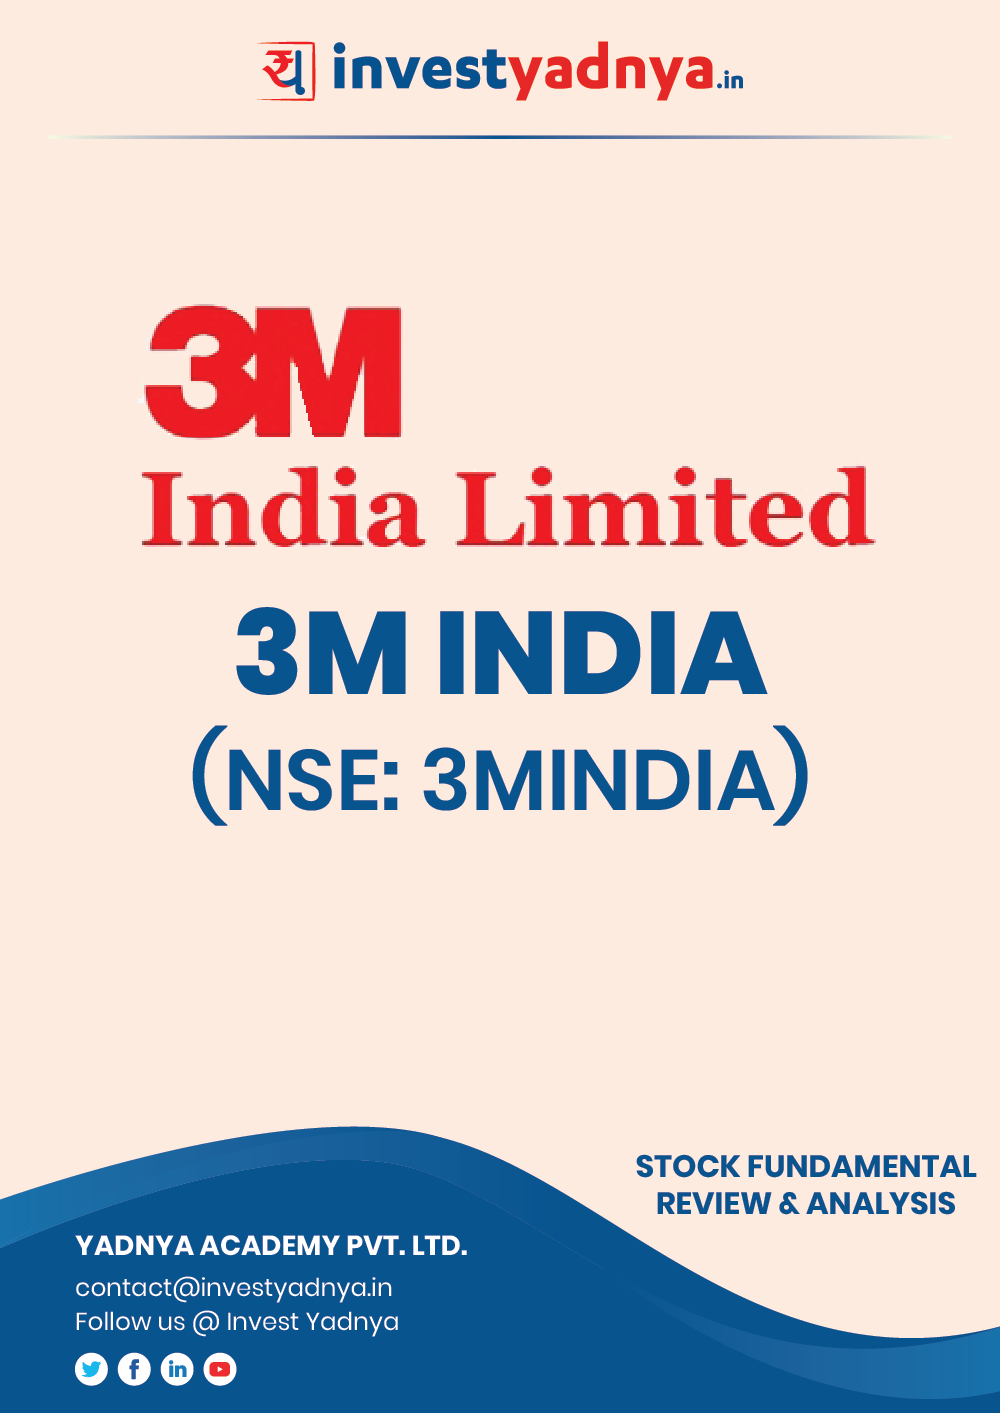 This e-book contains in-depth fundamental analysis of 3M India considering both Financial and Equity Research Parameters. It reviews the company, industry competitors, shareholding pattern, financials, and annual performance. ✔ Stock Analysis ✔ Quality Reports